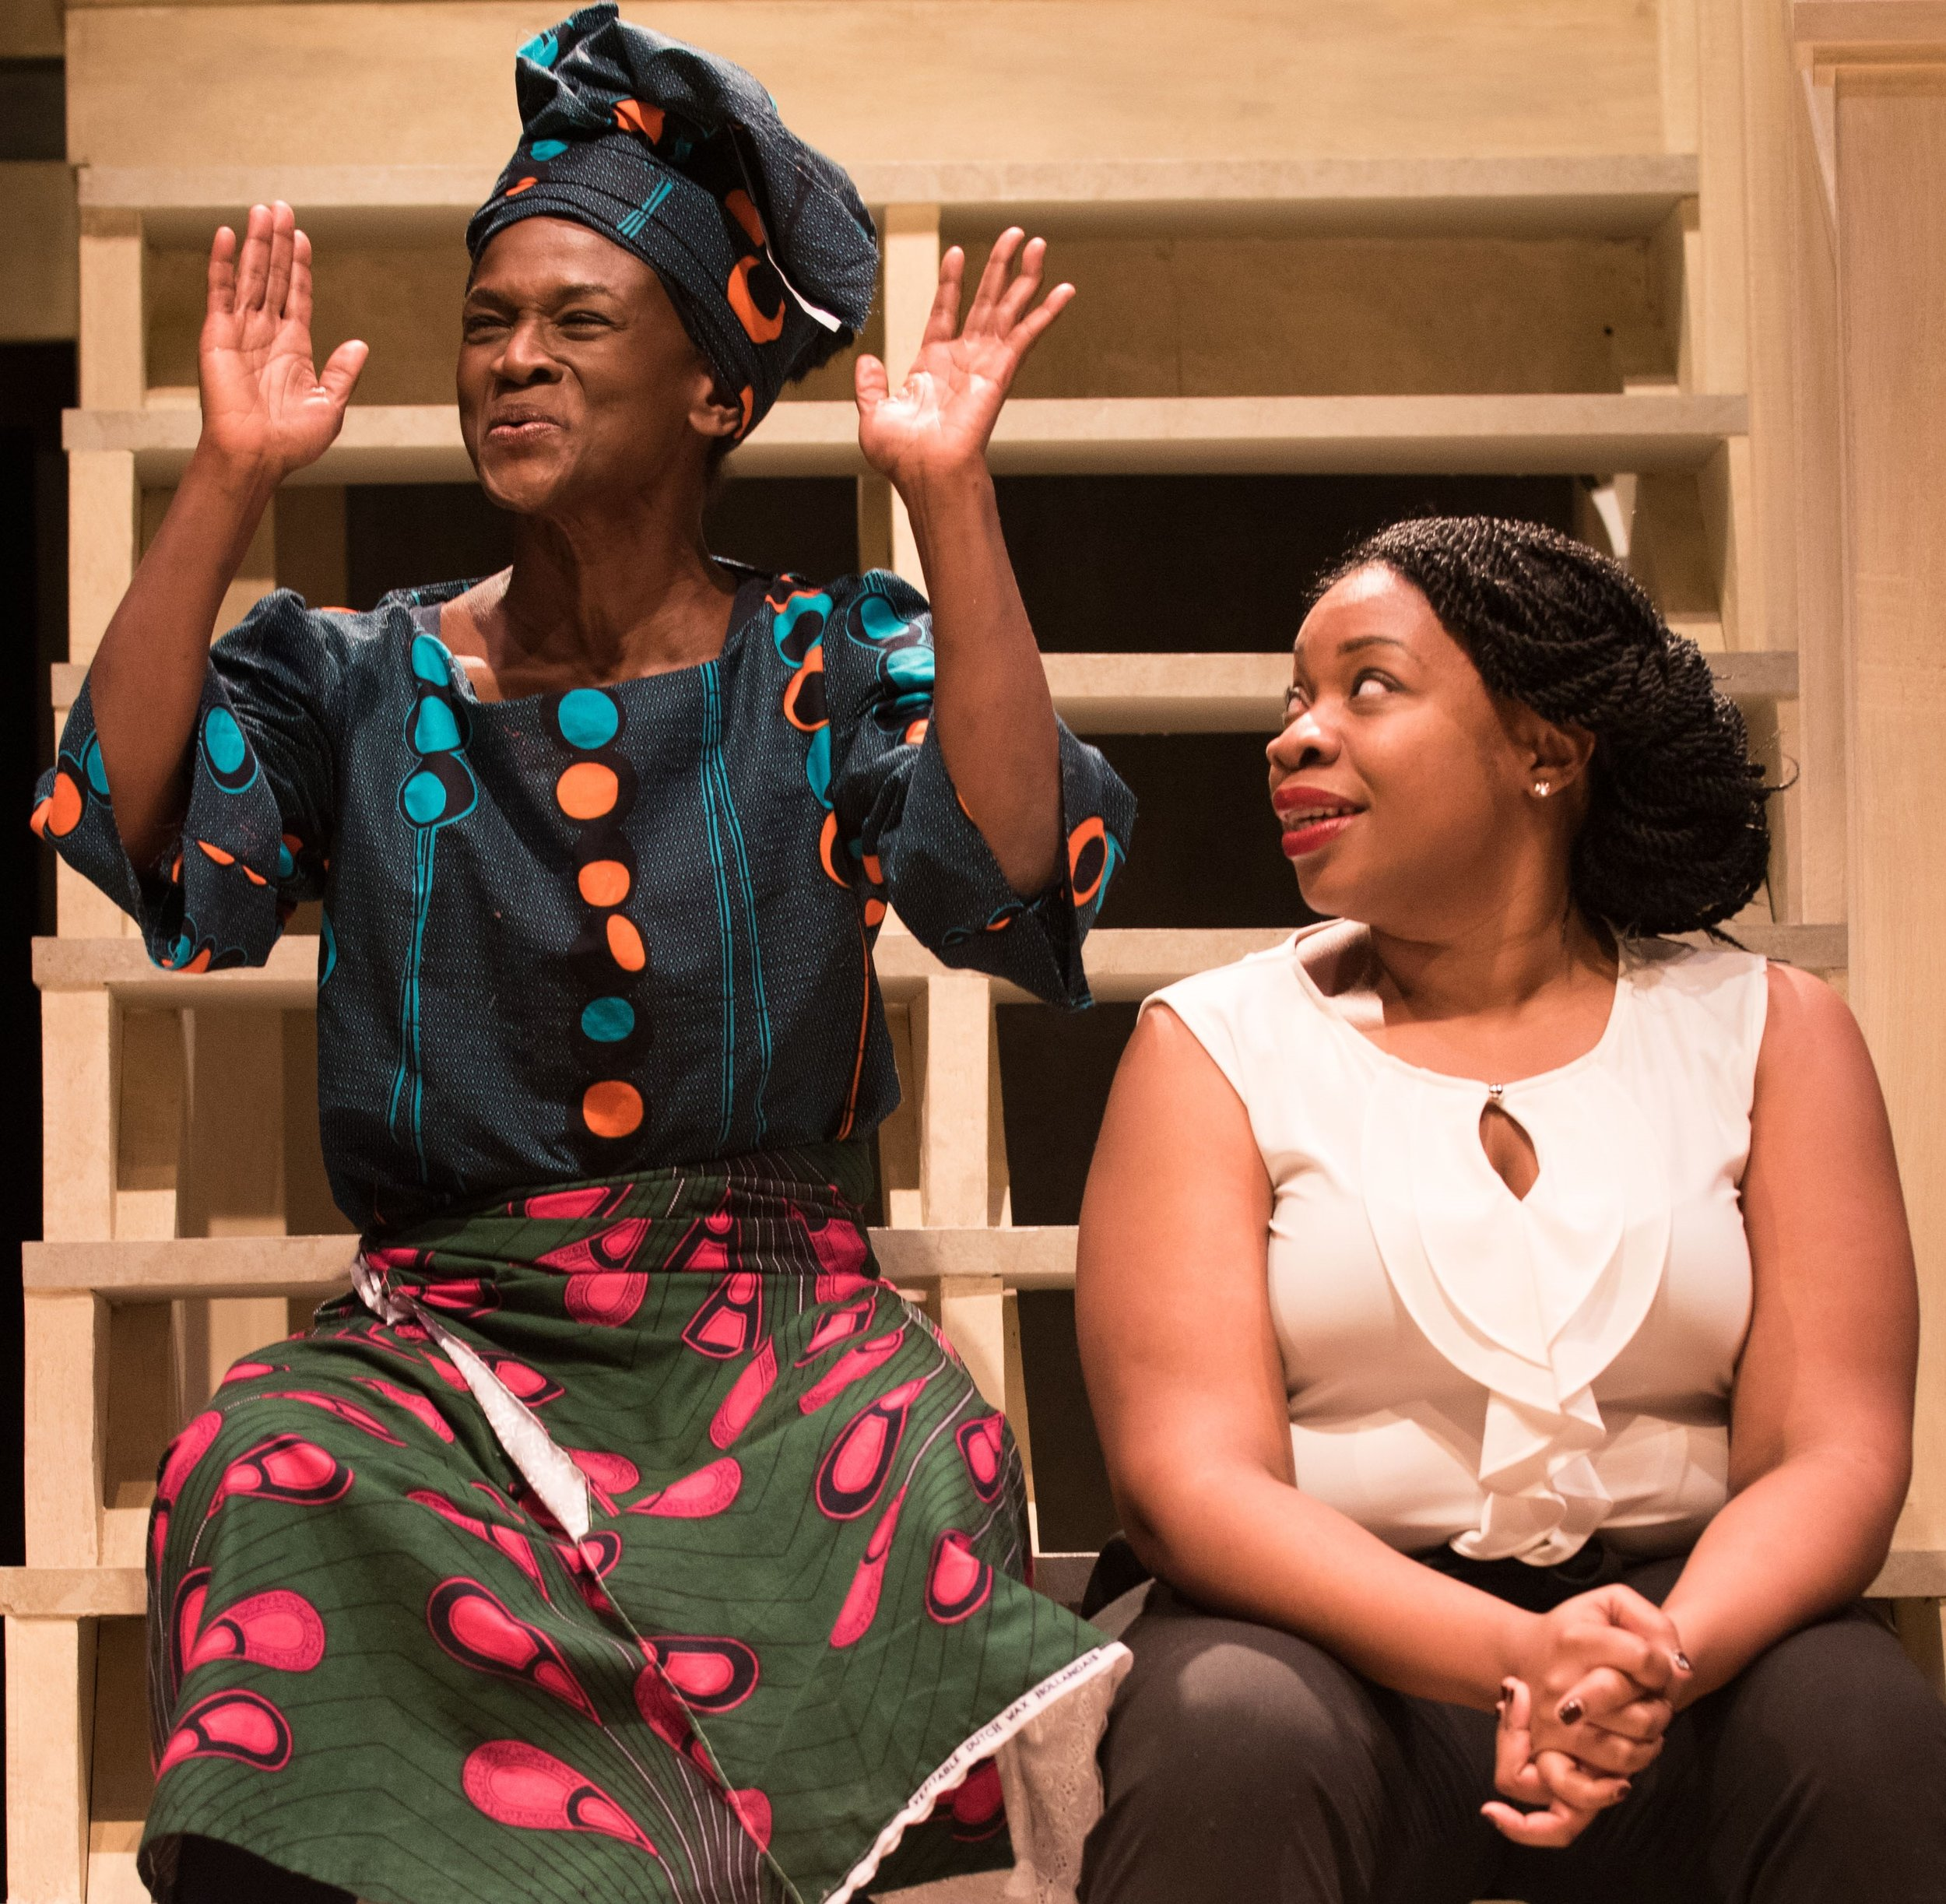 Udofia (right) with Patrice Johnson as one of the village women.